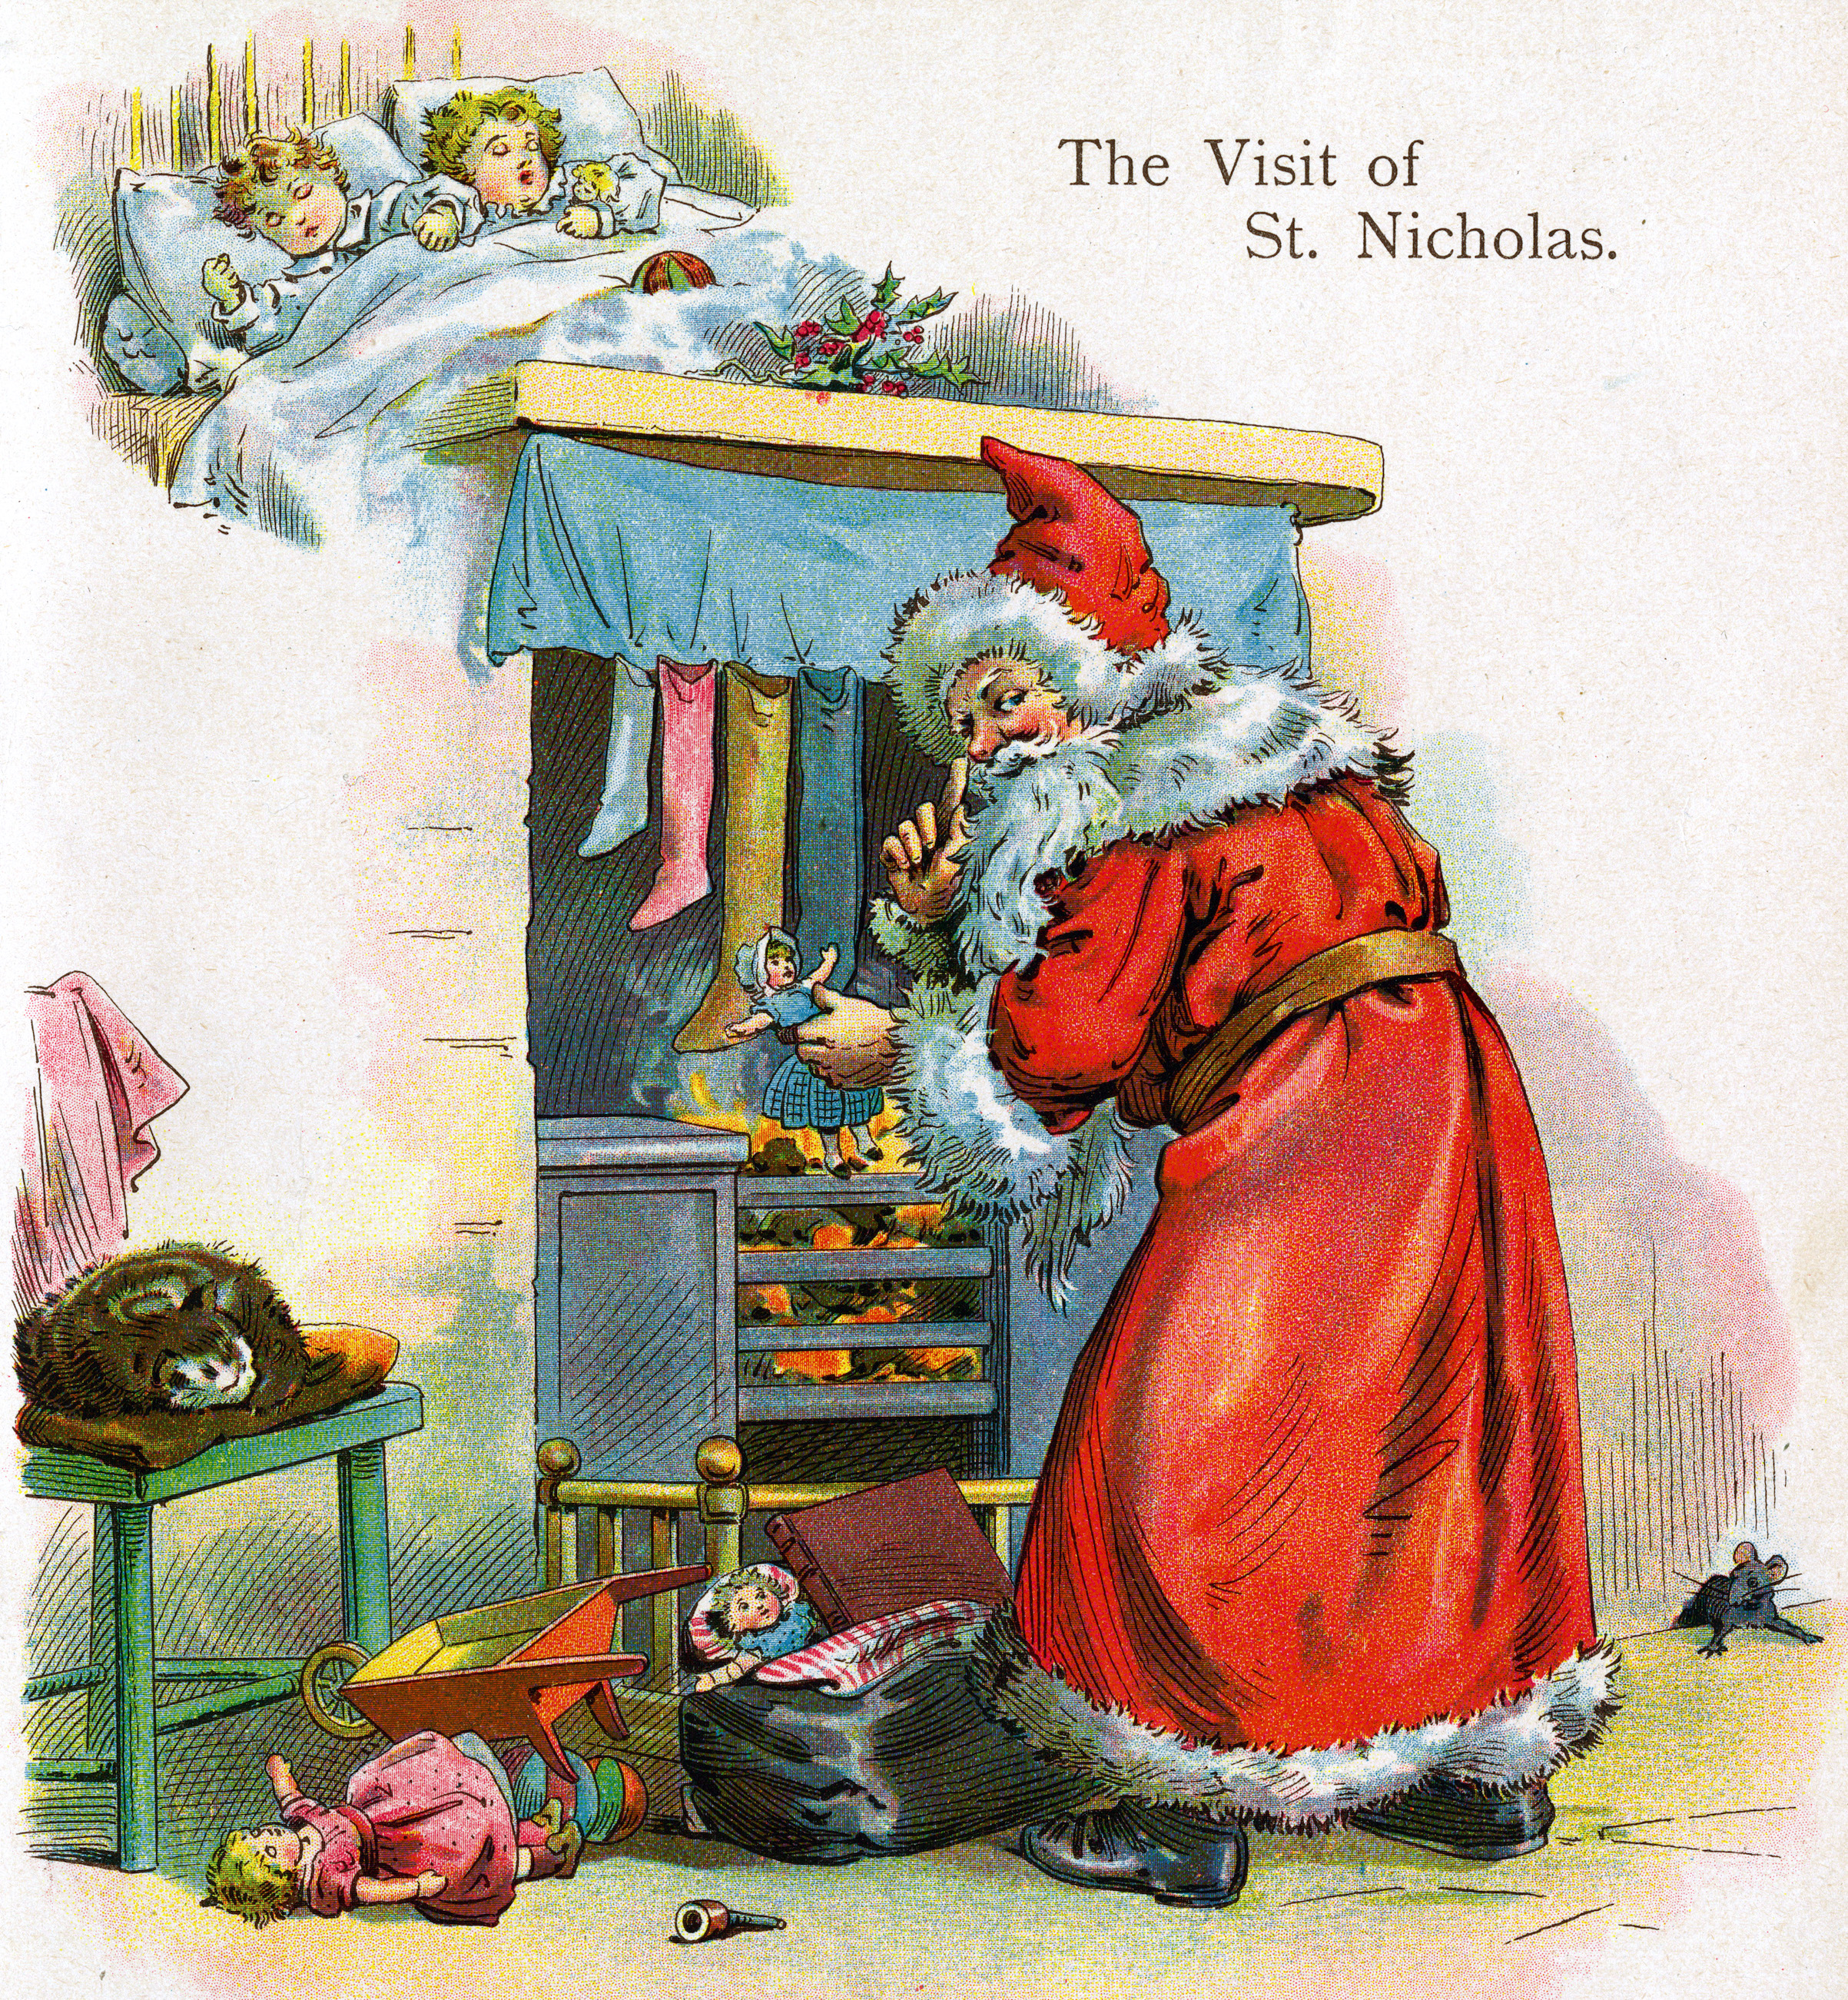 A lithographic book plate from one of McLoughlin's Christmas books shows Santa Claus by the chimney and was published in New York City in 1895.